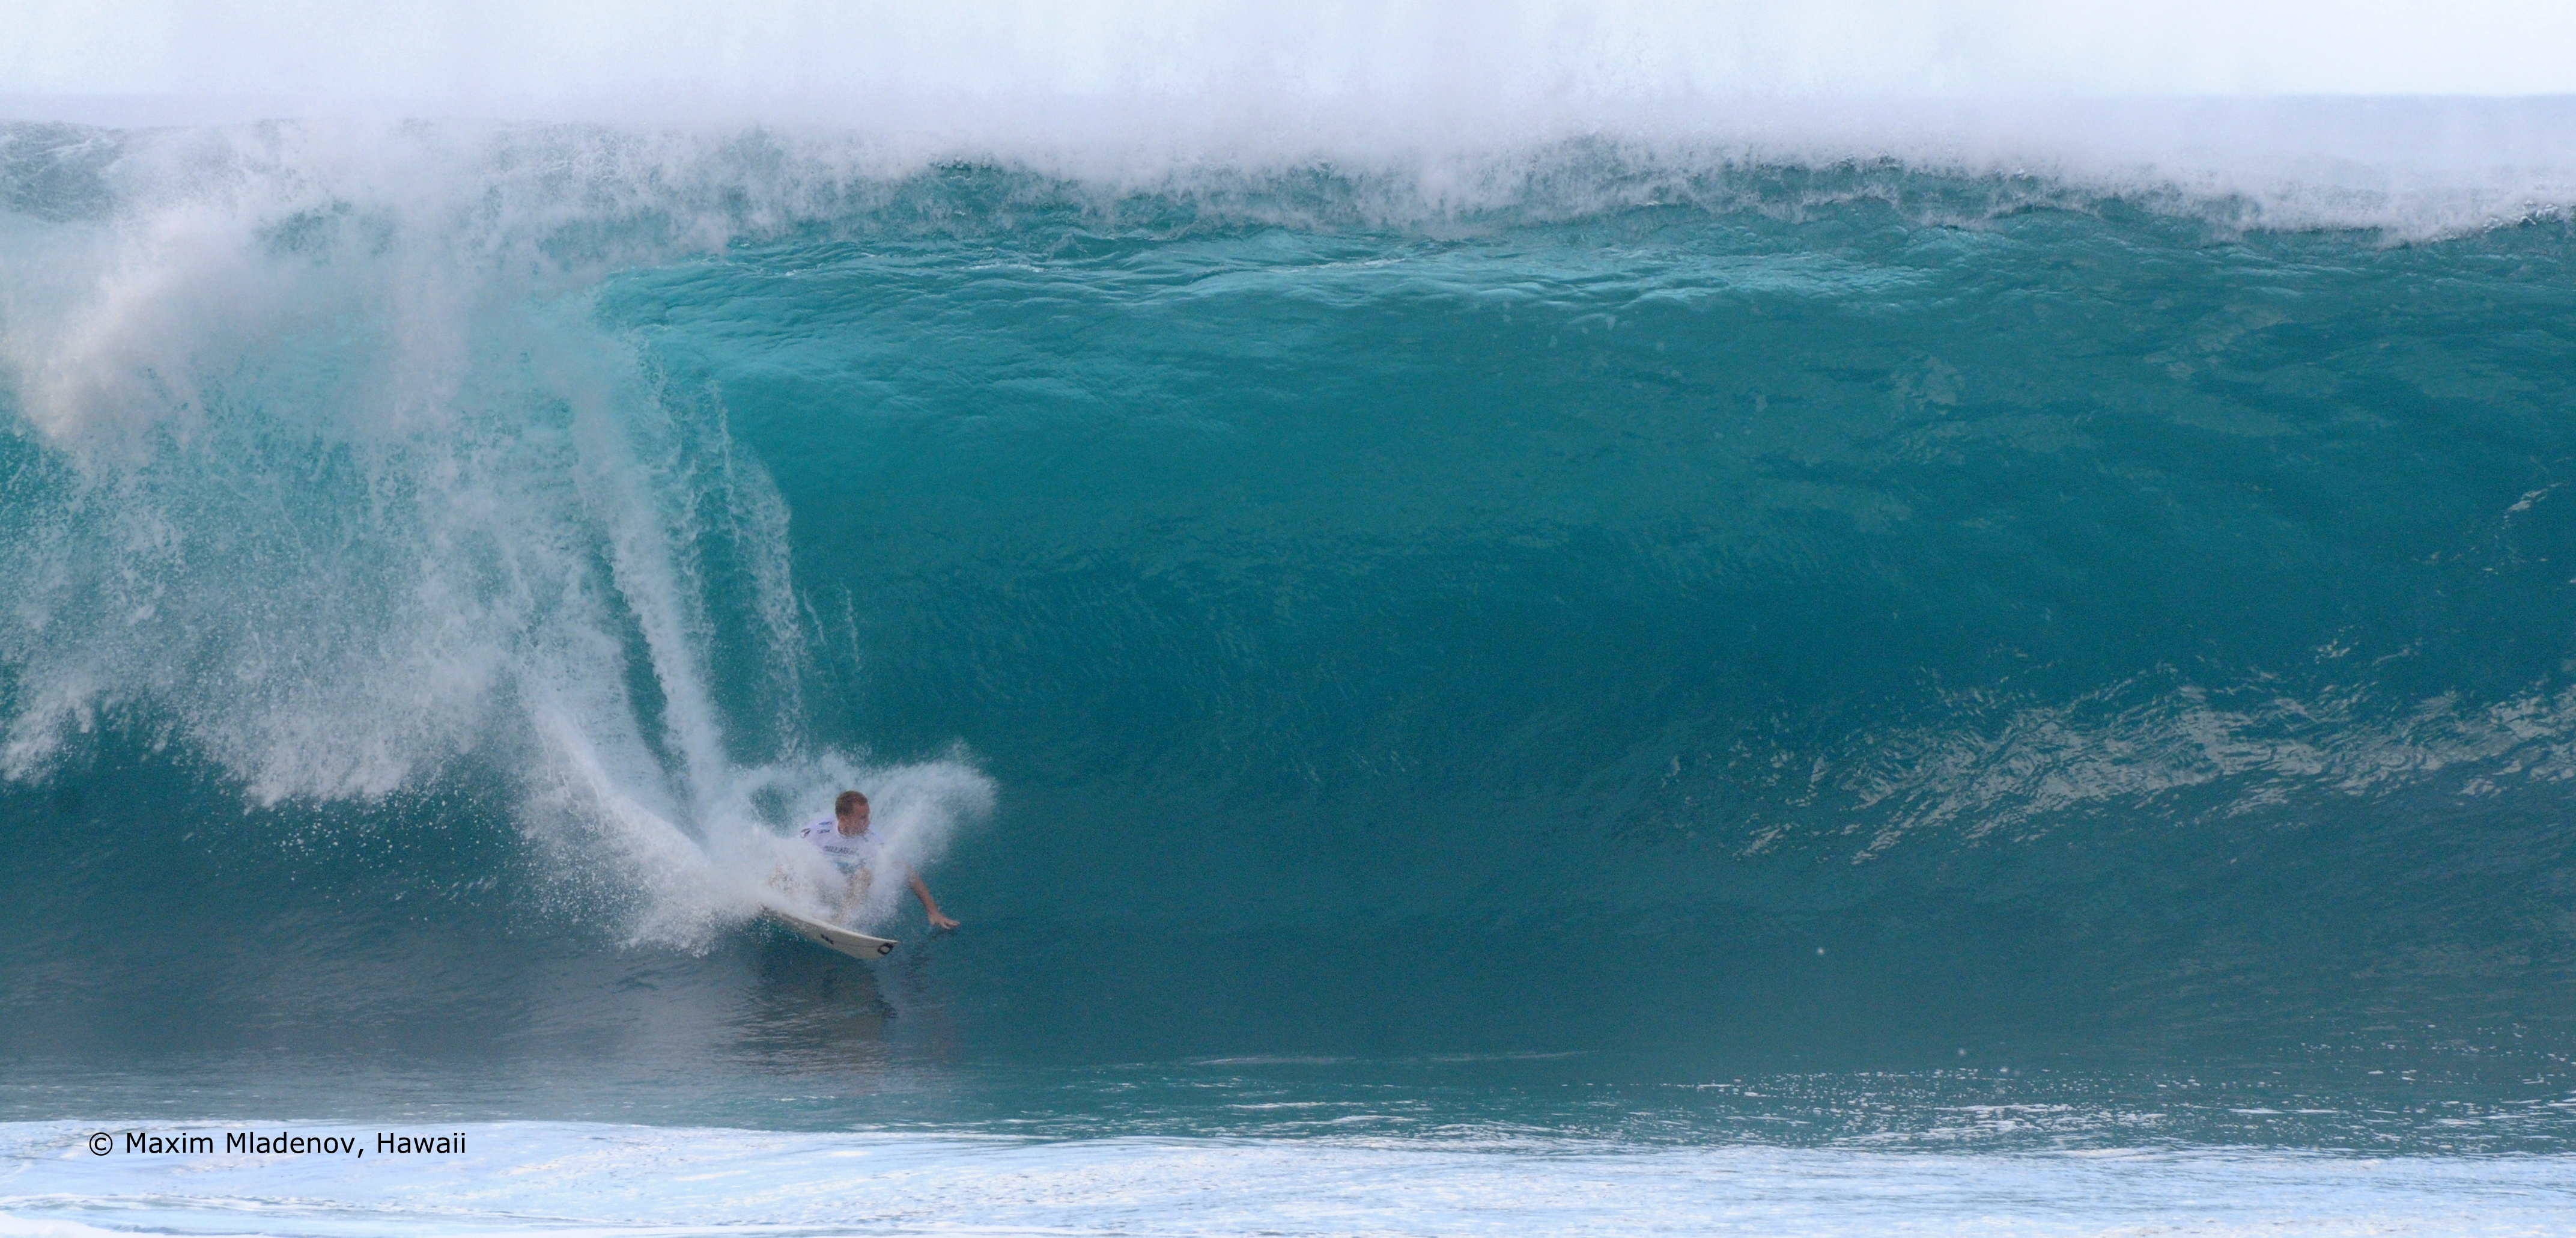 Sans commentaires -Sequ02-  1er Tour 08-12-2011 Billabong PIPE Masters © Maxim Mladenov, Hawaii